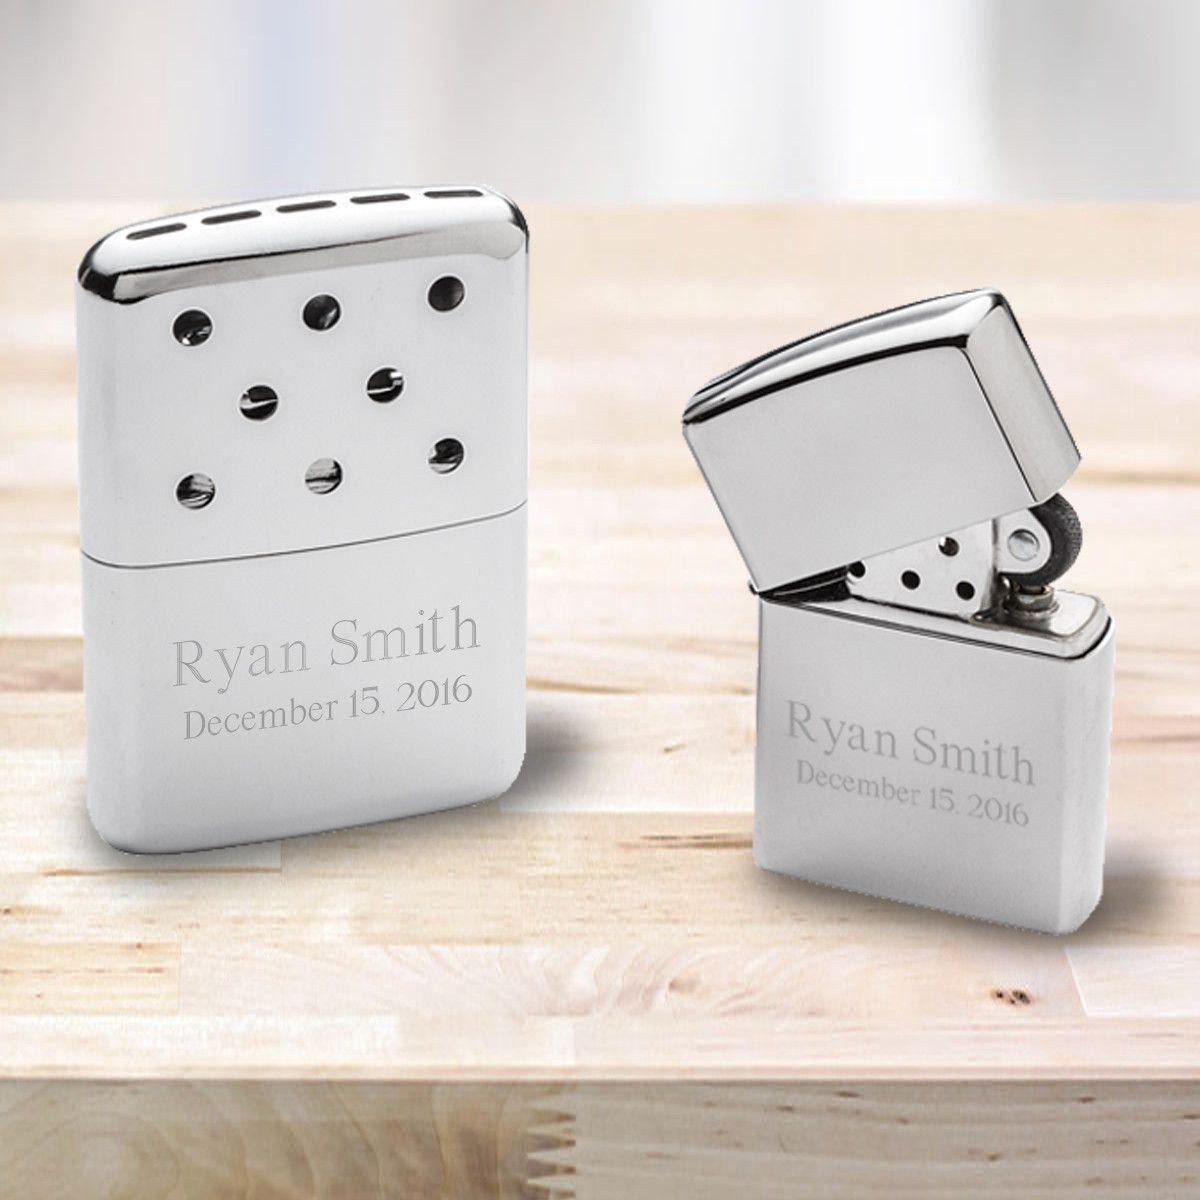 Personalized Zippo Hand Warmer With Chrome Zippo Lighter